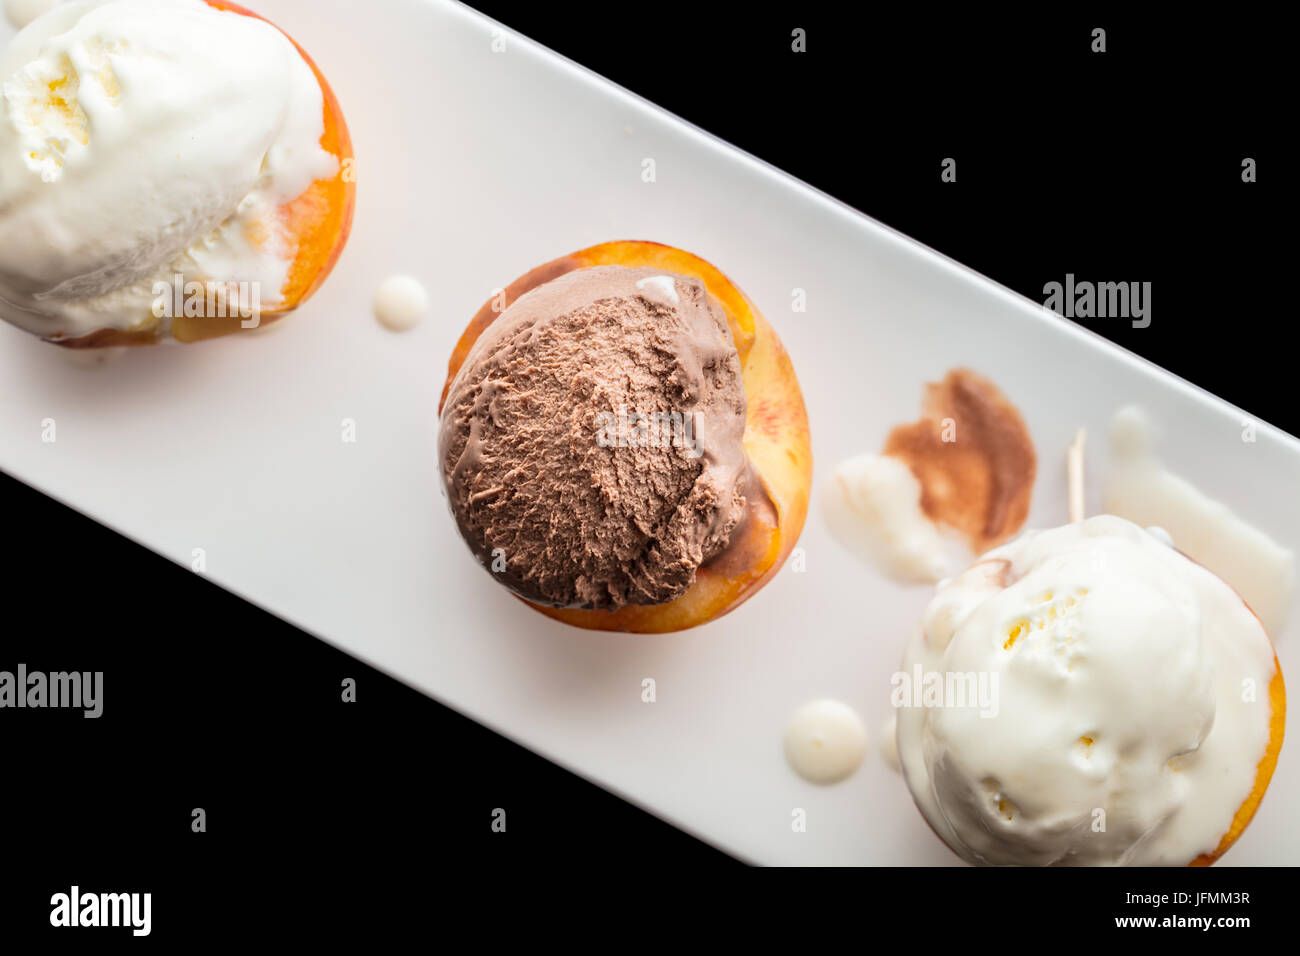 Dessert ice cream on peach, black background - Stock Image